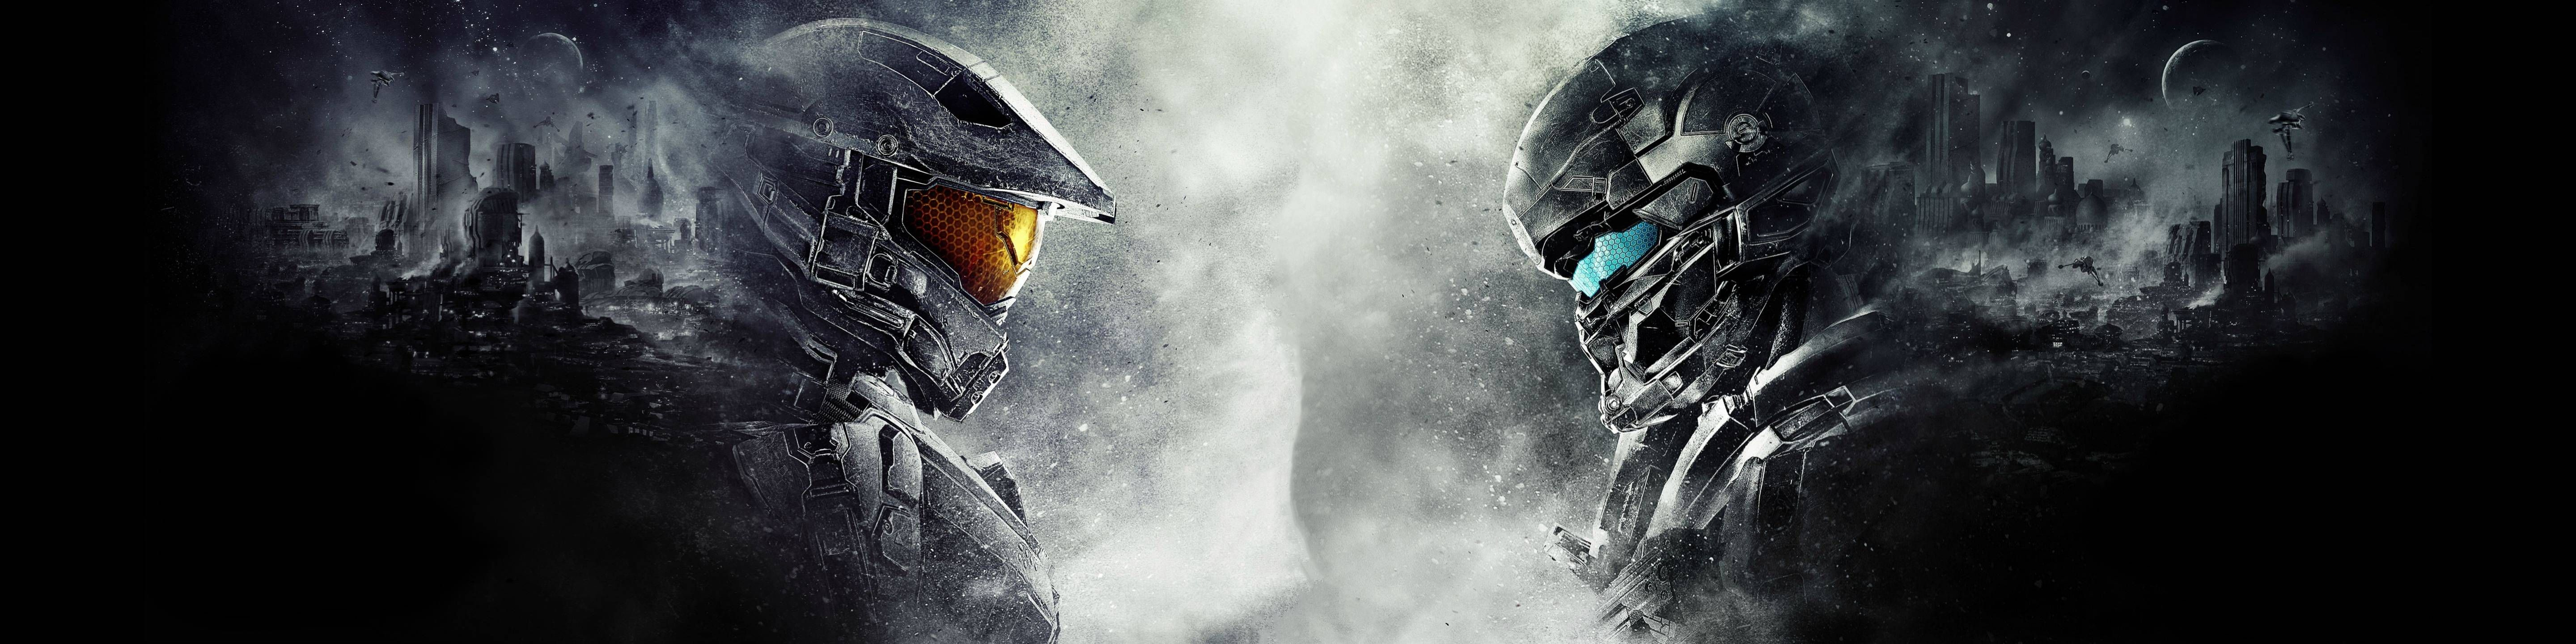 Halo Wallpapers HD Wallpaper